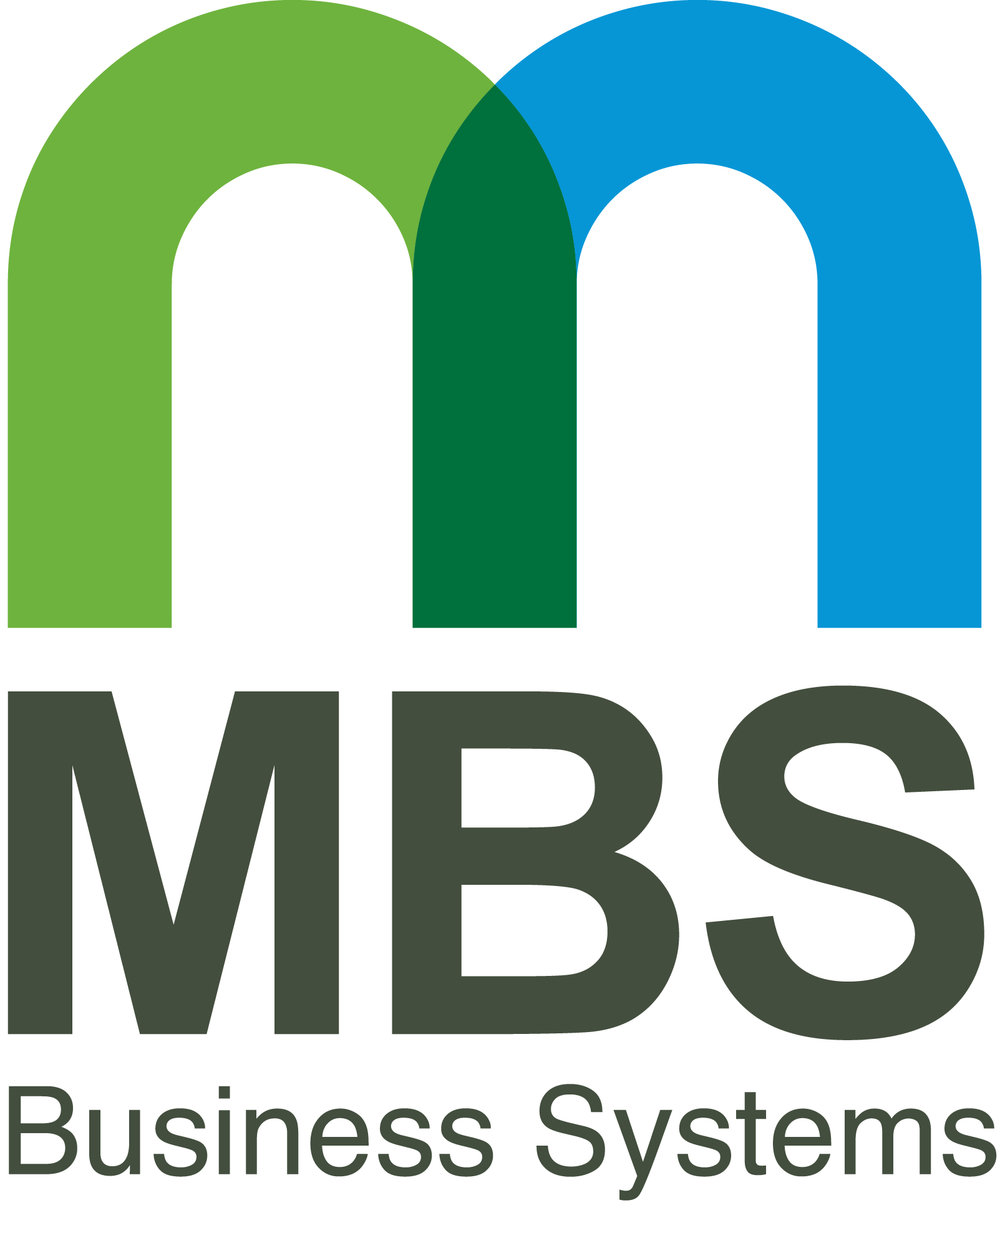 mbs-business-systems-vertical.jpg